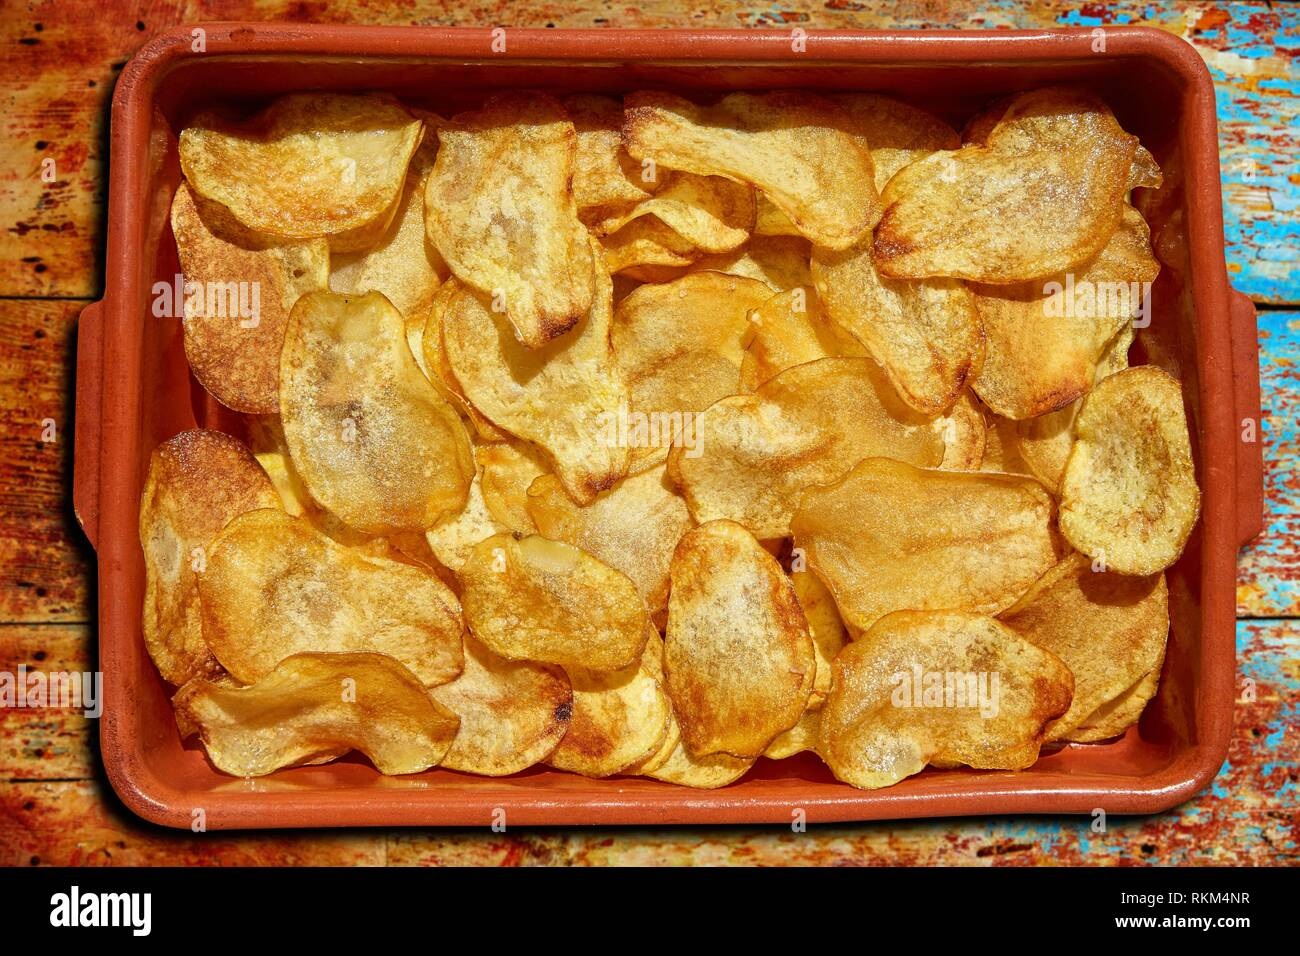 Homemade Fried Potatoes Sliced Chips In A Clay Pot Stock Photo Alamy